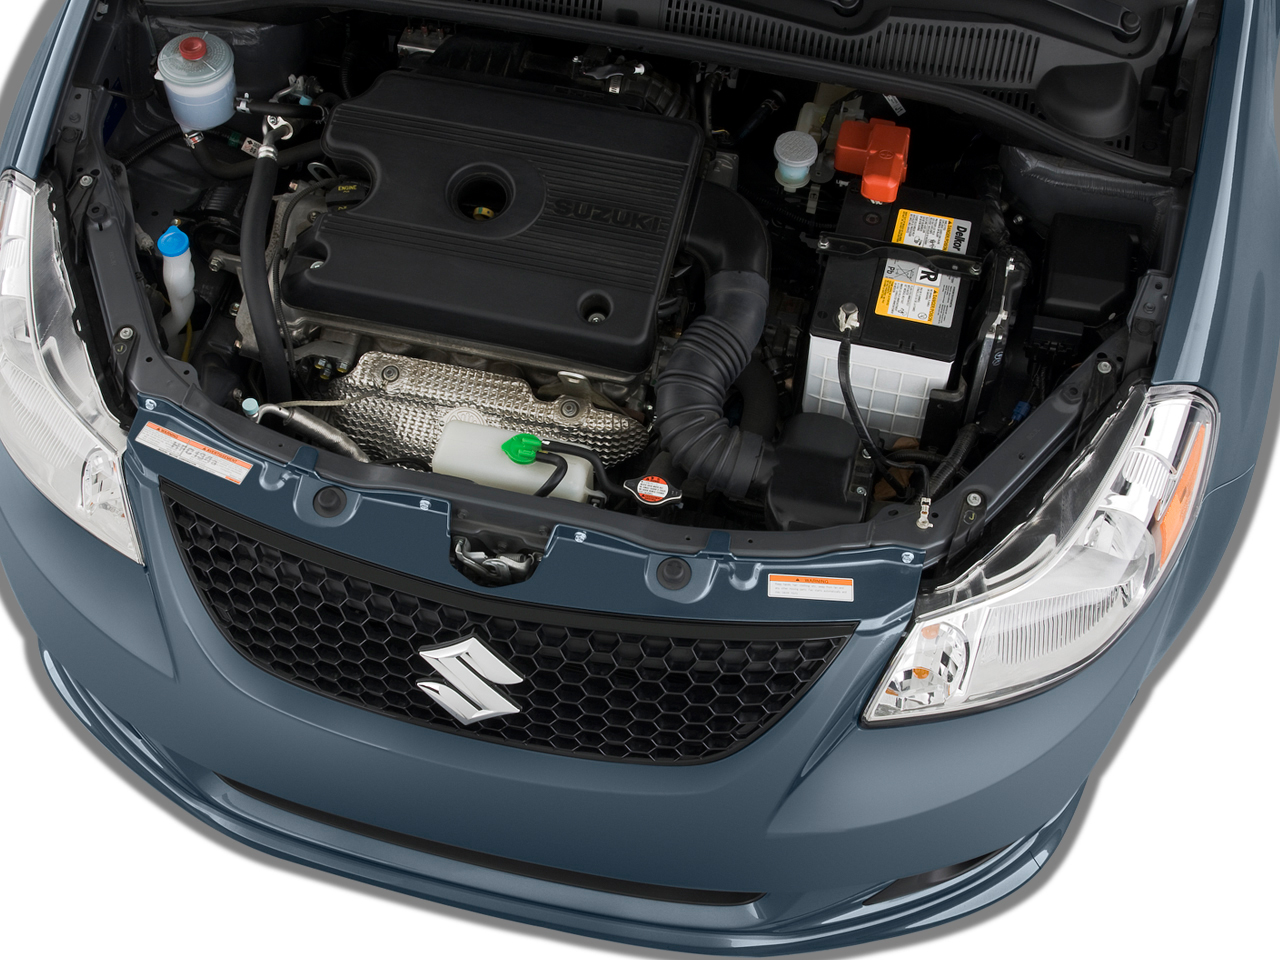 Volkswagen And Suzuki To Build Small Car For Indian Market 2009 Sx4 Engine Diagram 6 125